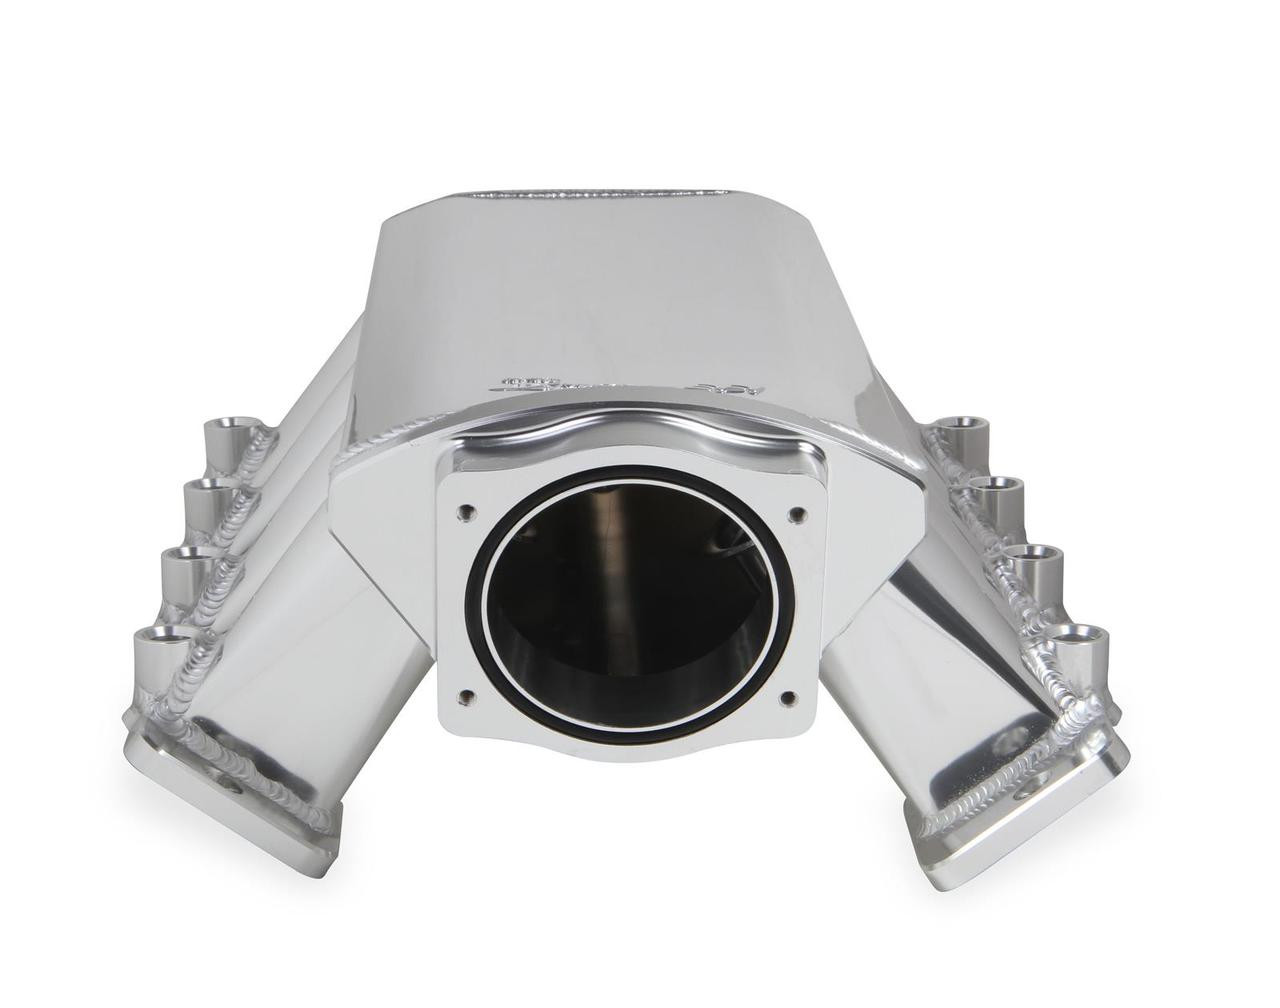 Holley Sniper EFI Fabricated Intake 102mm Throttle Body LS1 LS2 LS6 820041 (FRONT VIEW)